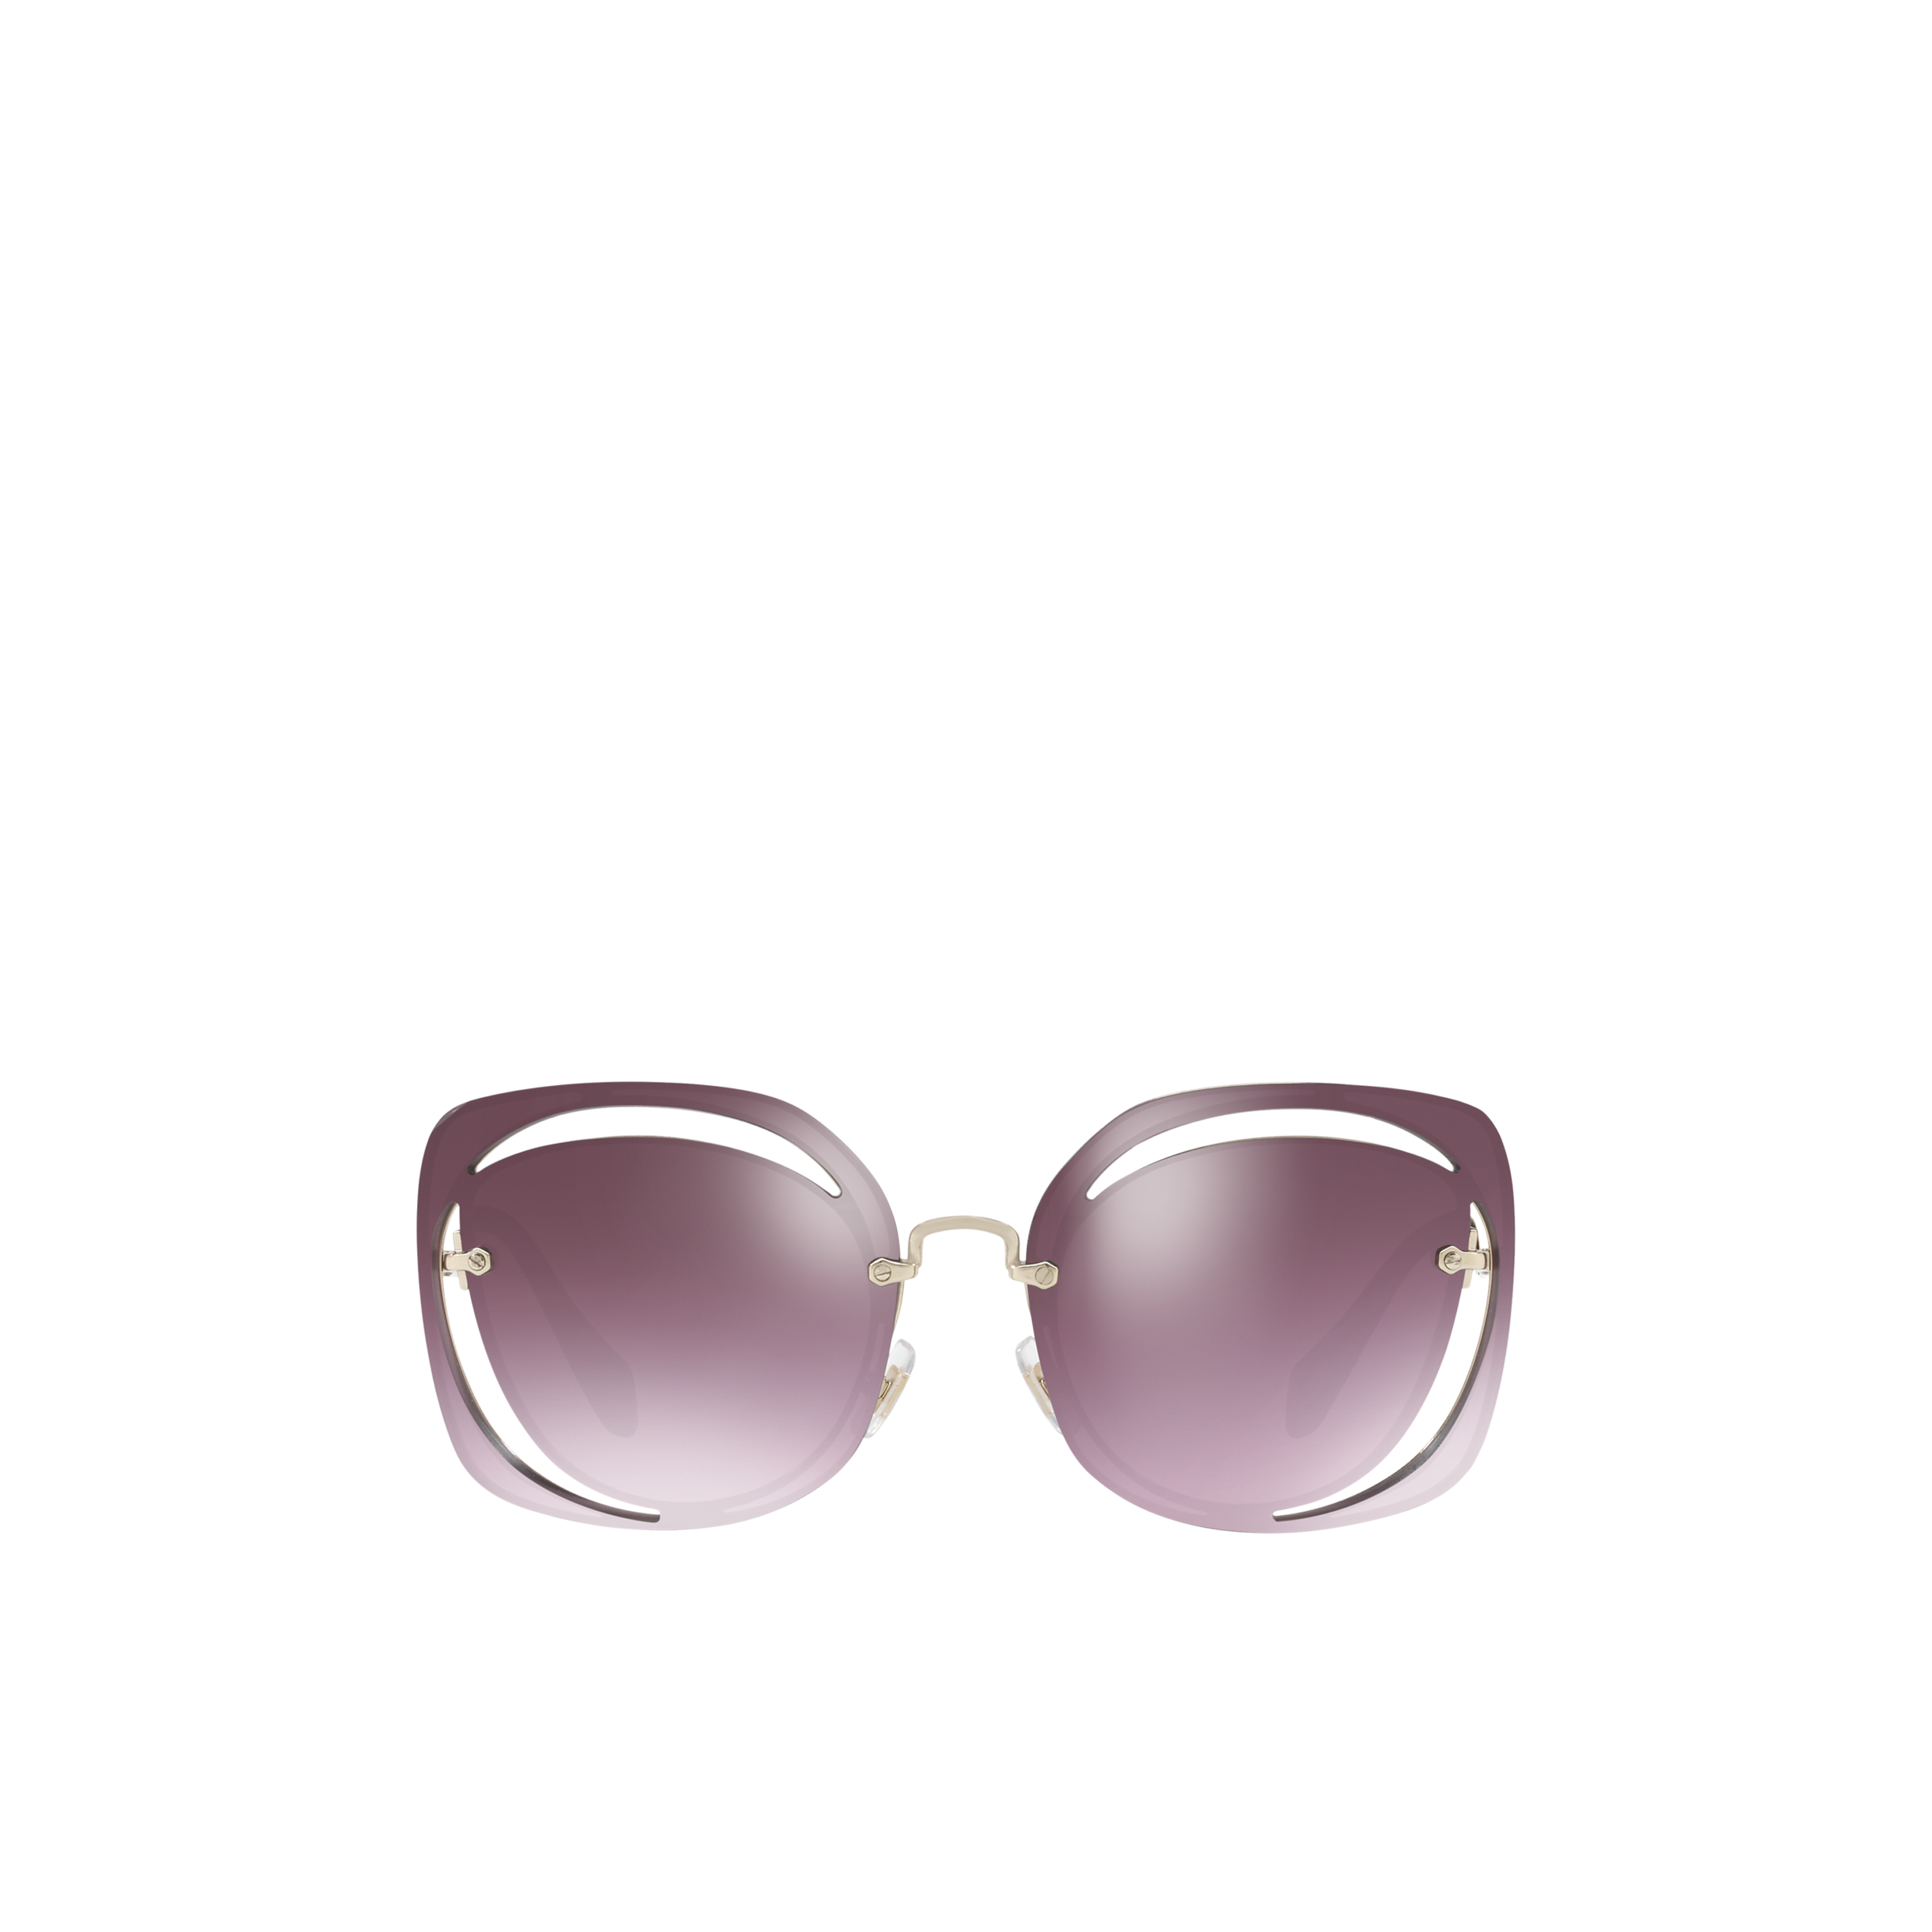 0318a95d913e Find in store. Close. Your item. Miu Miu Scenique cut-out eyewear